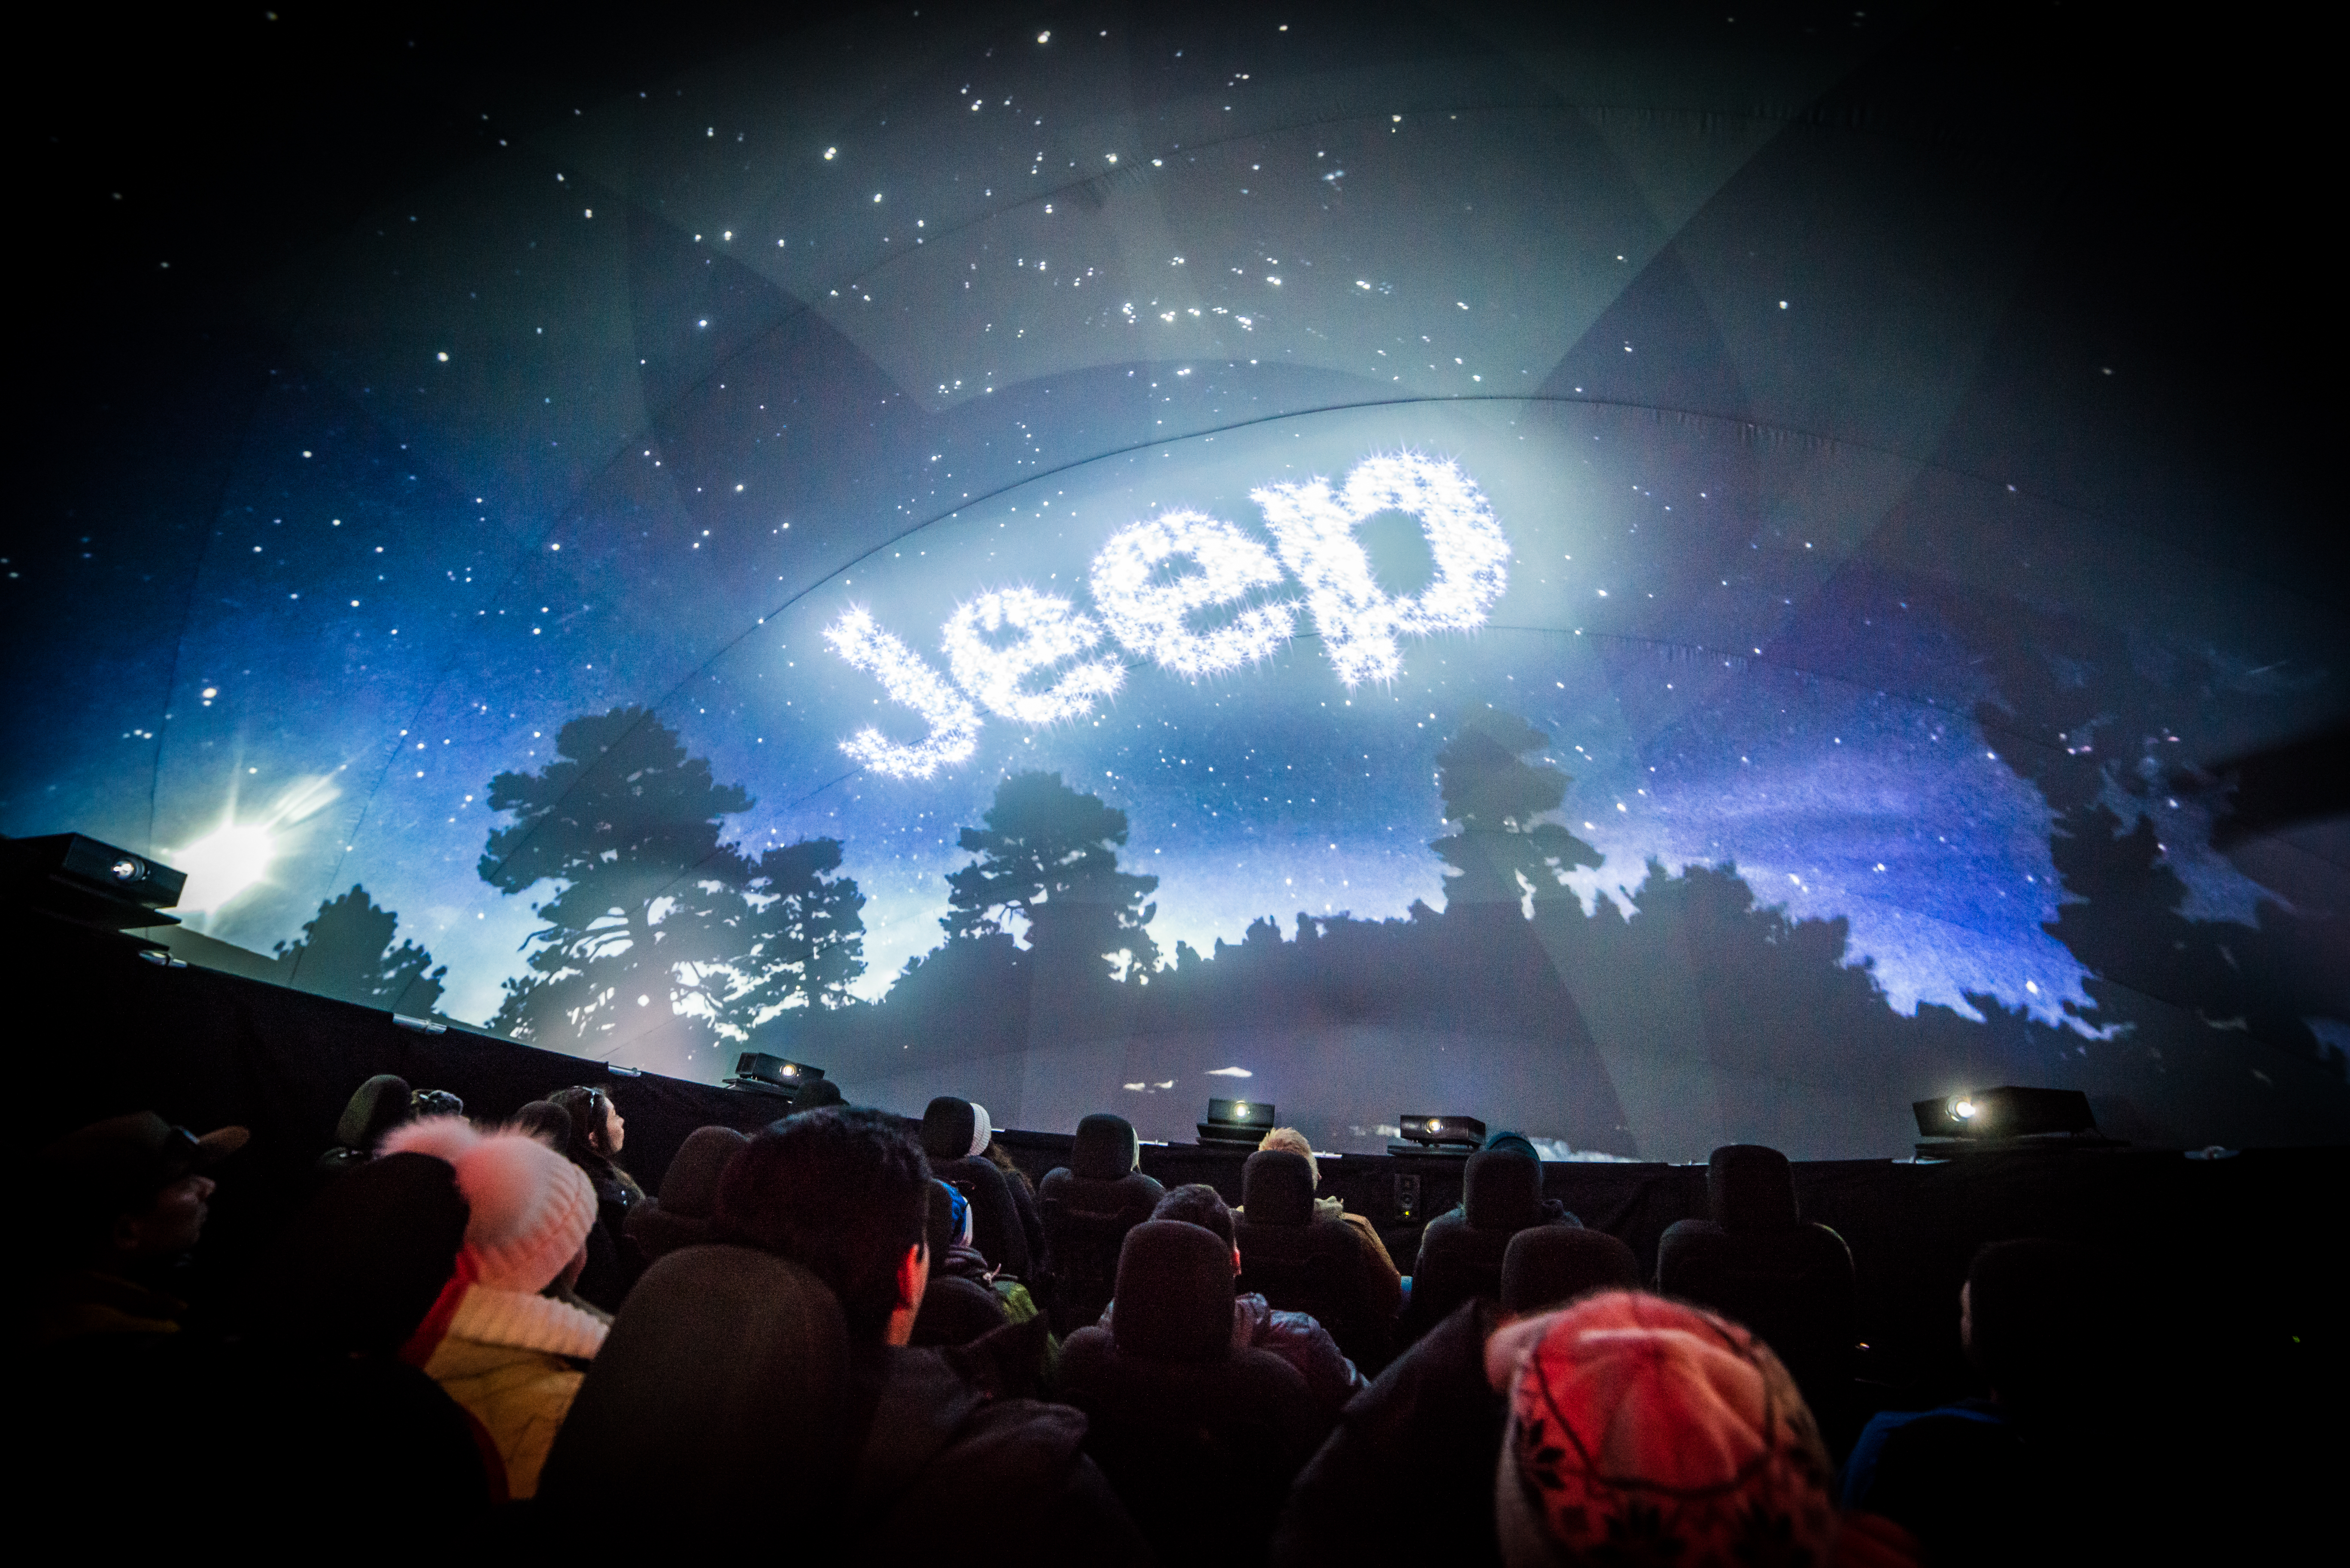 Inspira and Jeep Win Gold at Experience Design & Technology Awards